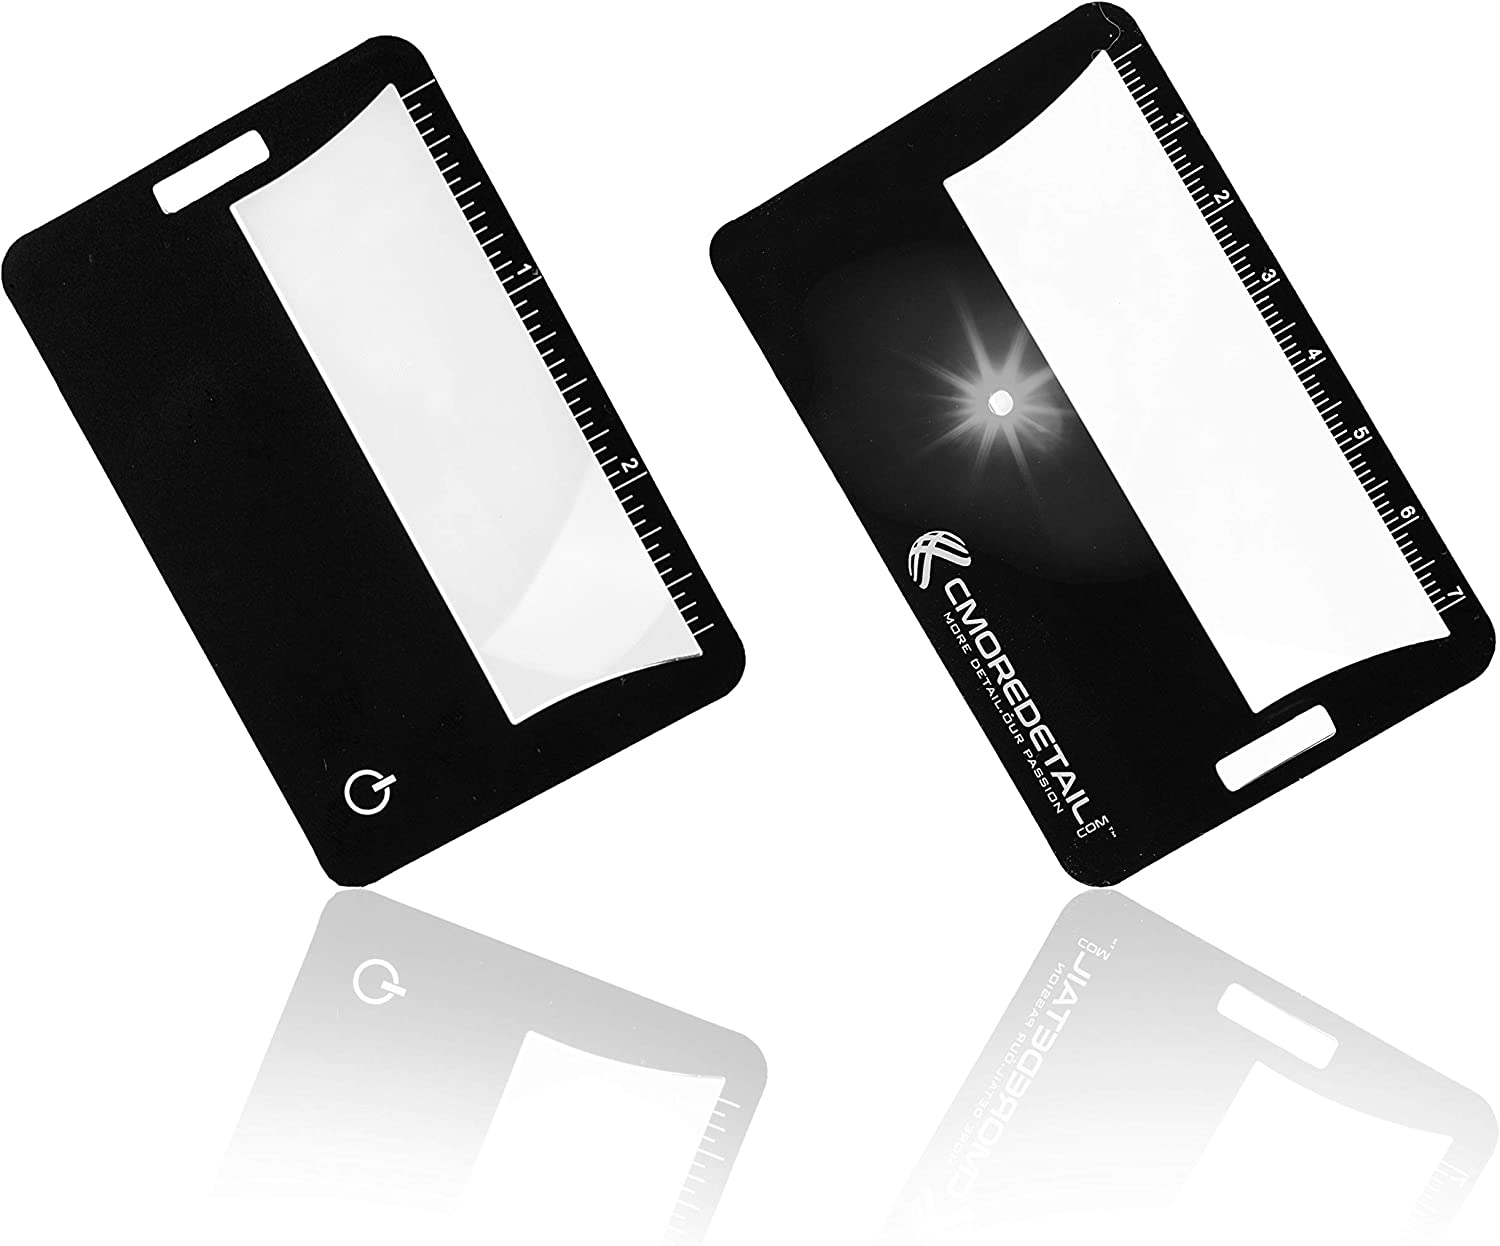 Use as Pocket Magnifying Glass with Light for Travel or Reading Magnifier Lens for Menus 2 Lighted Magnifiers 3X Lighted Fresnel Lens Credit Card Size Magnifier 6X 3X Pocket Magnifier with Light